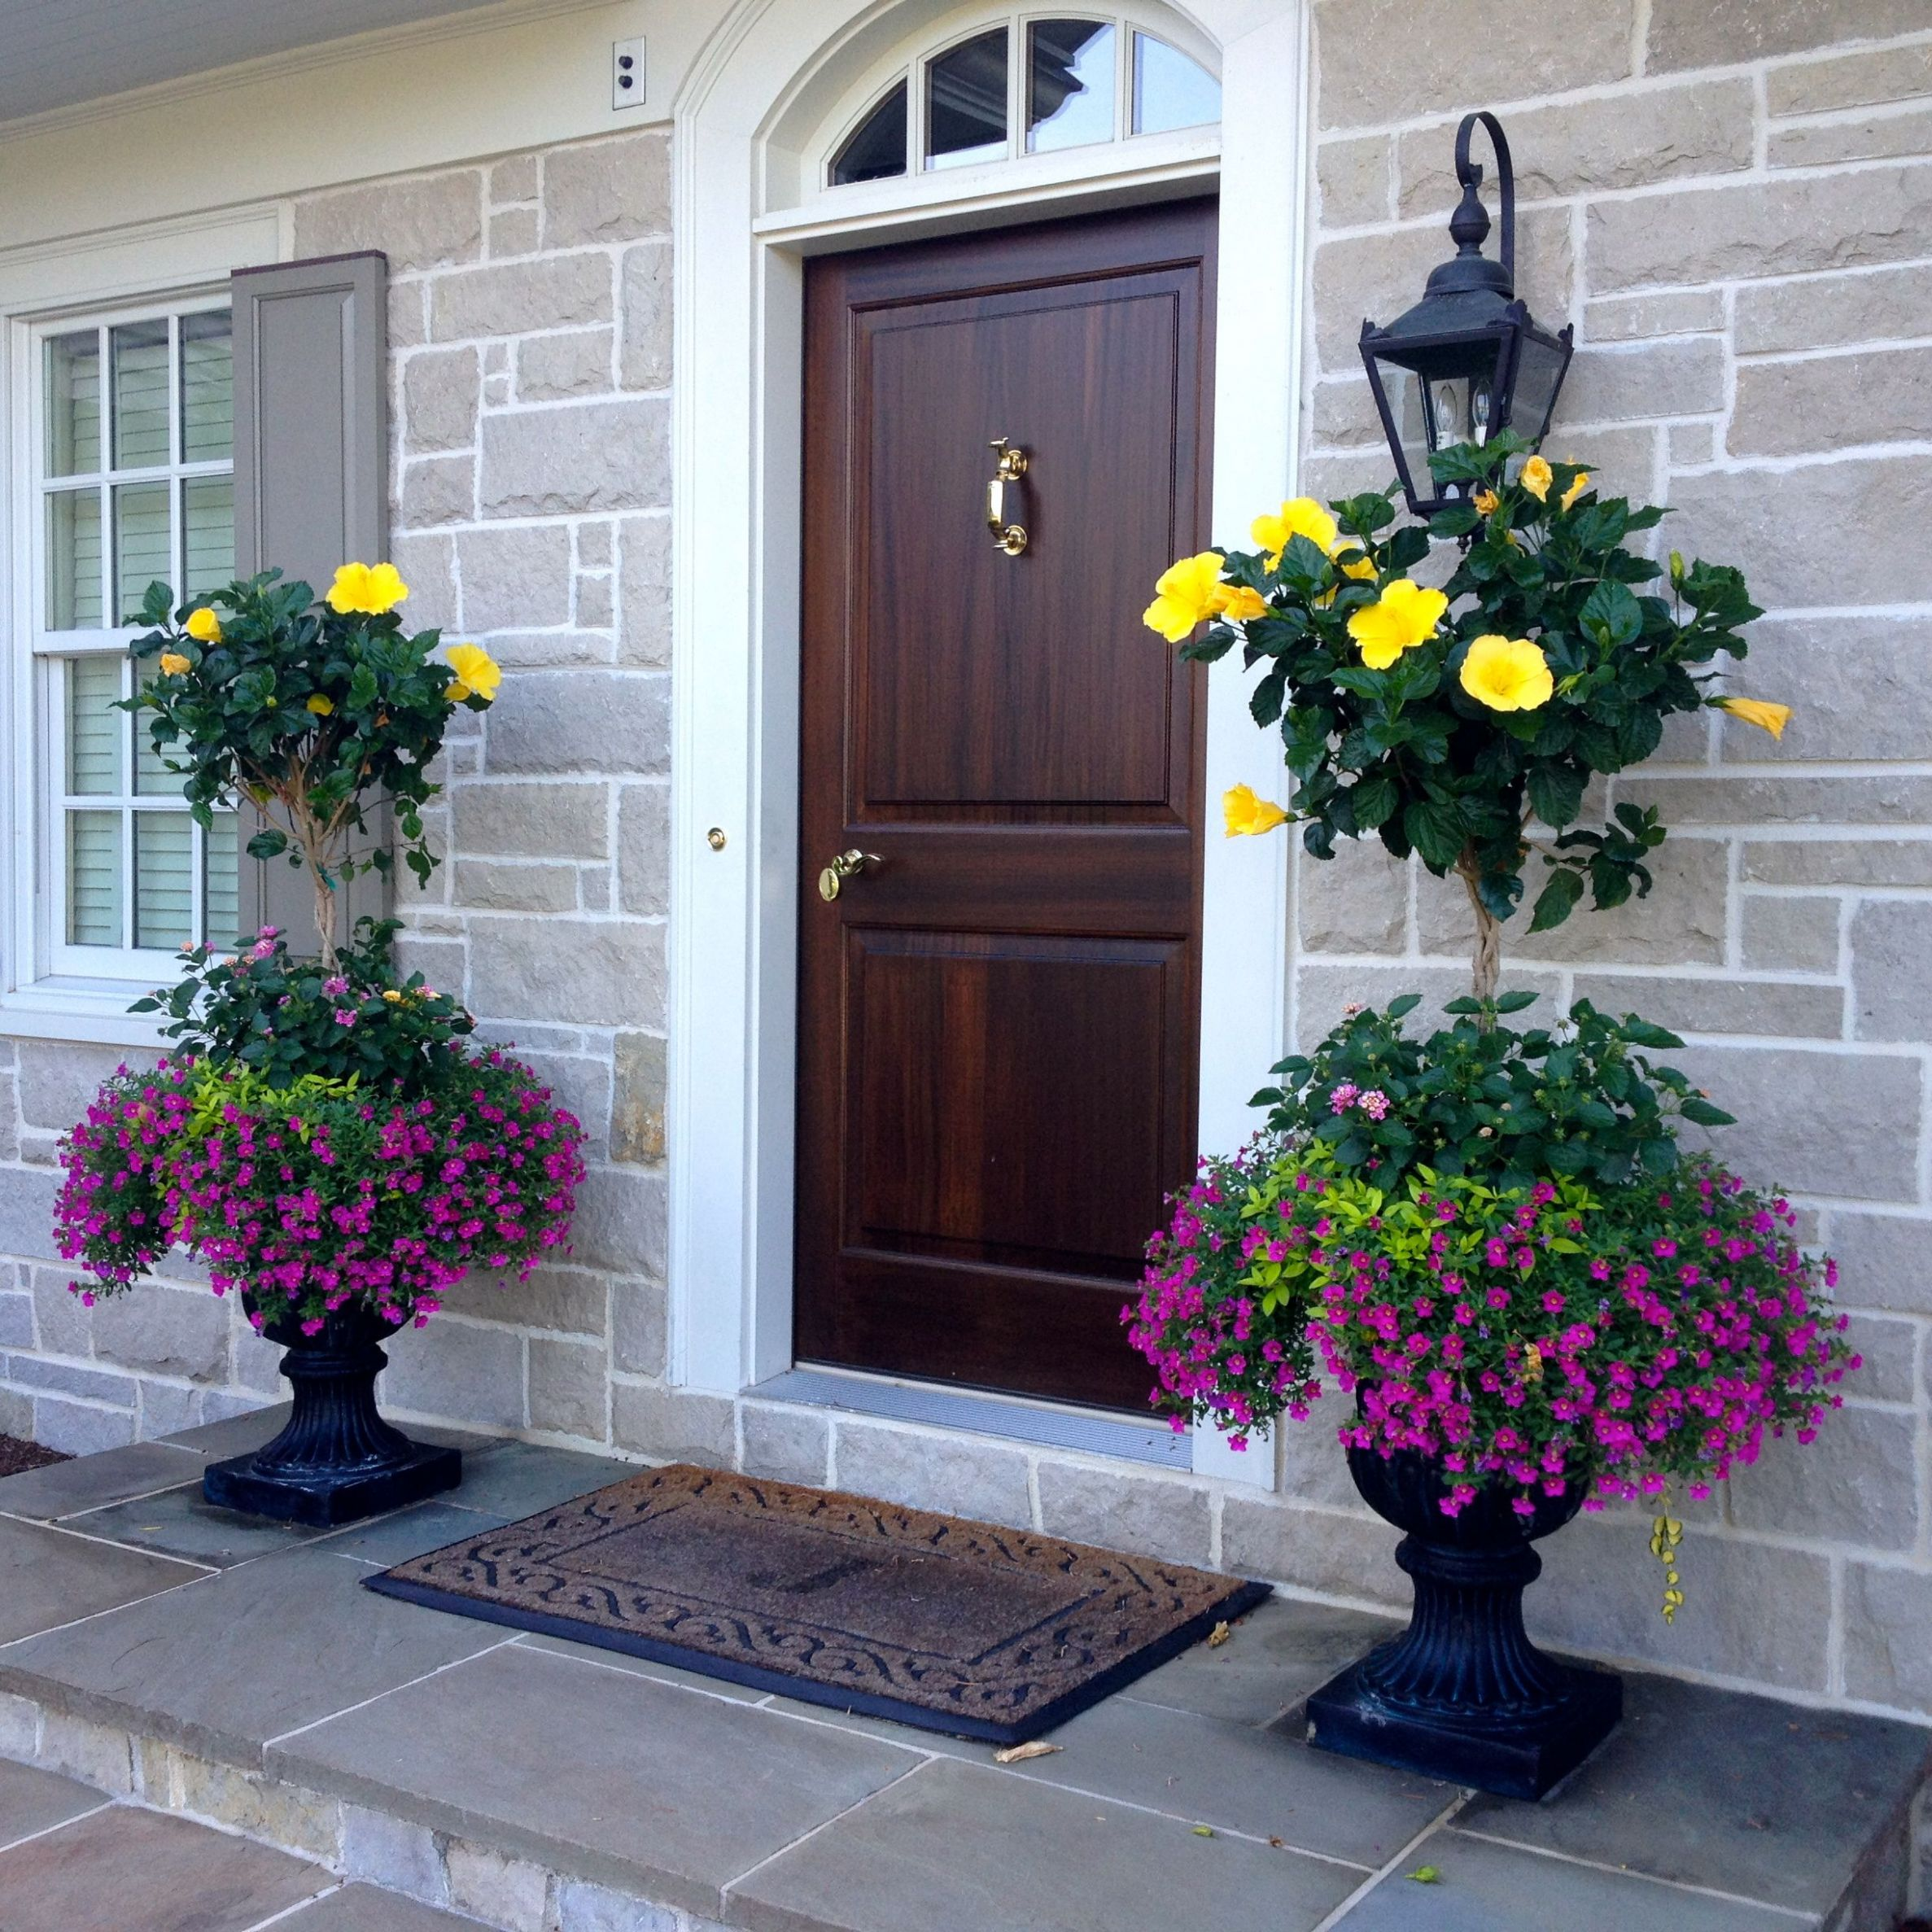 Hibiscus planters … (With images) | Porch flowers, Front porch ..